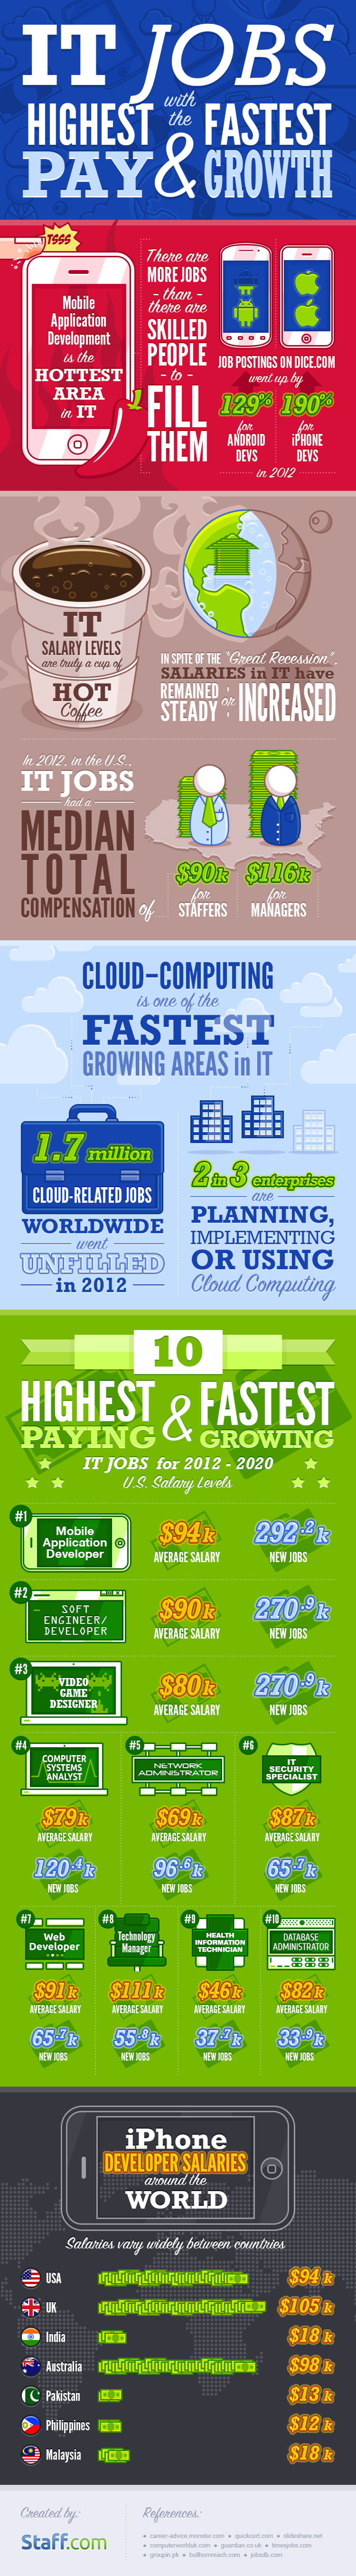 IT Jobs with the Highest Pay and Fastest Growth – Infographic Infographic